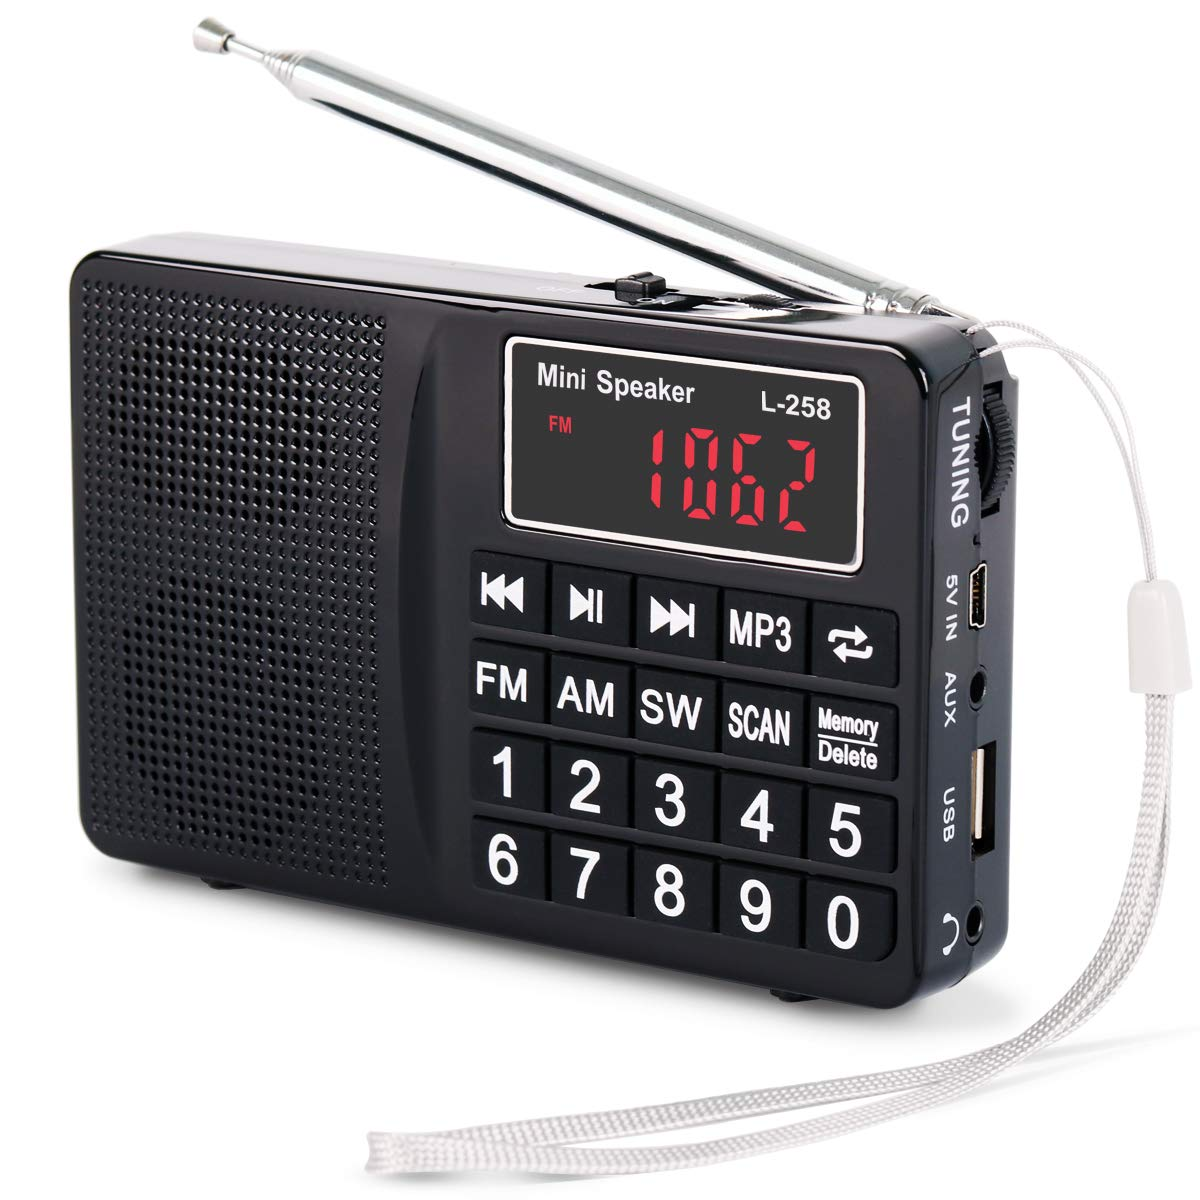 PRUNUS Portable SW/FM / AM (MW) / MP3 / USB/SD / TF Radio with Bass Speaker. Large Button and Large Display. Stores Stations Manually and Automatically. Allowing The User to Play Stored MP3 Files.